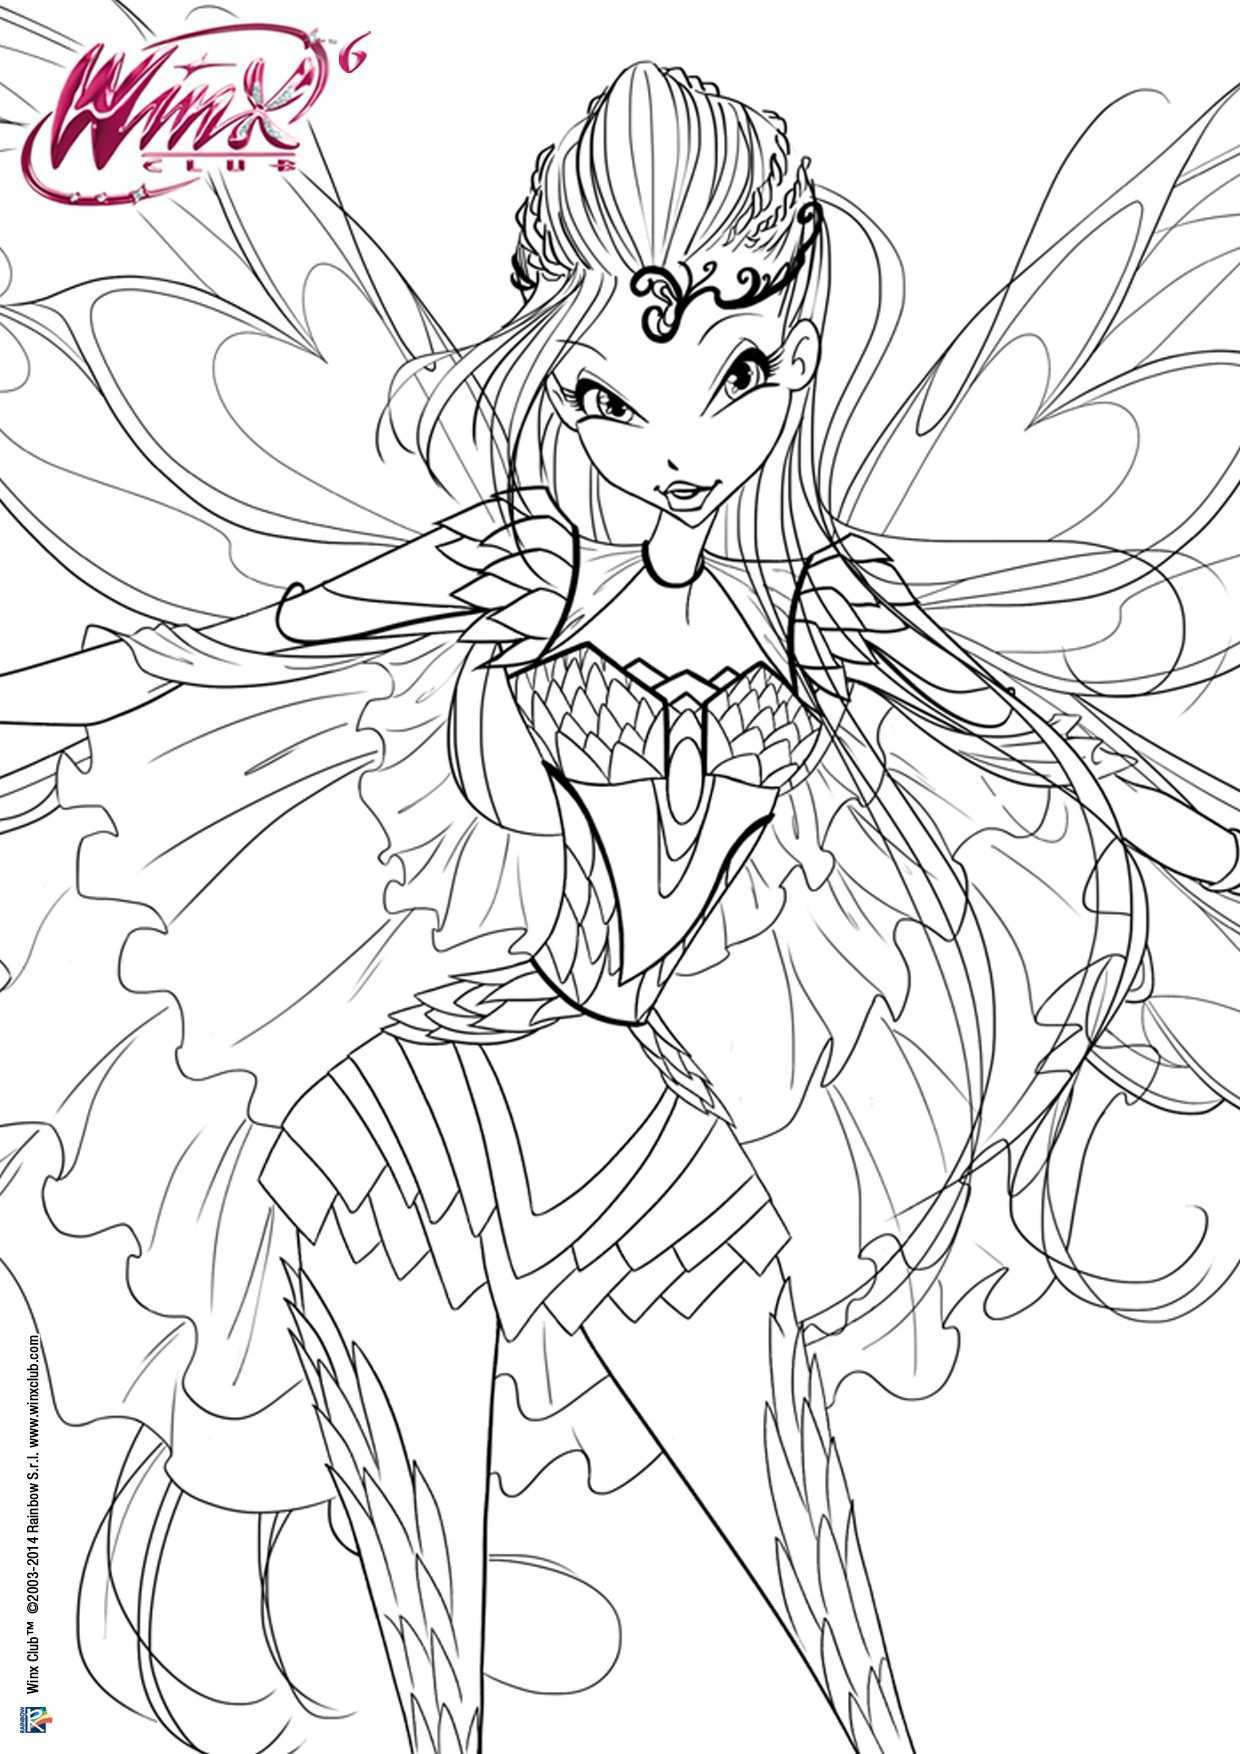 Winx Club Tumblr Cartoon Coloring Pages Coloring Pages Fairy Coloring Pages